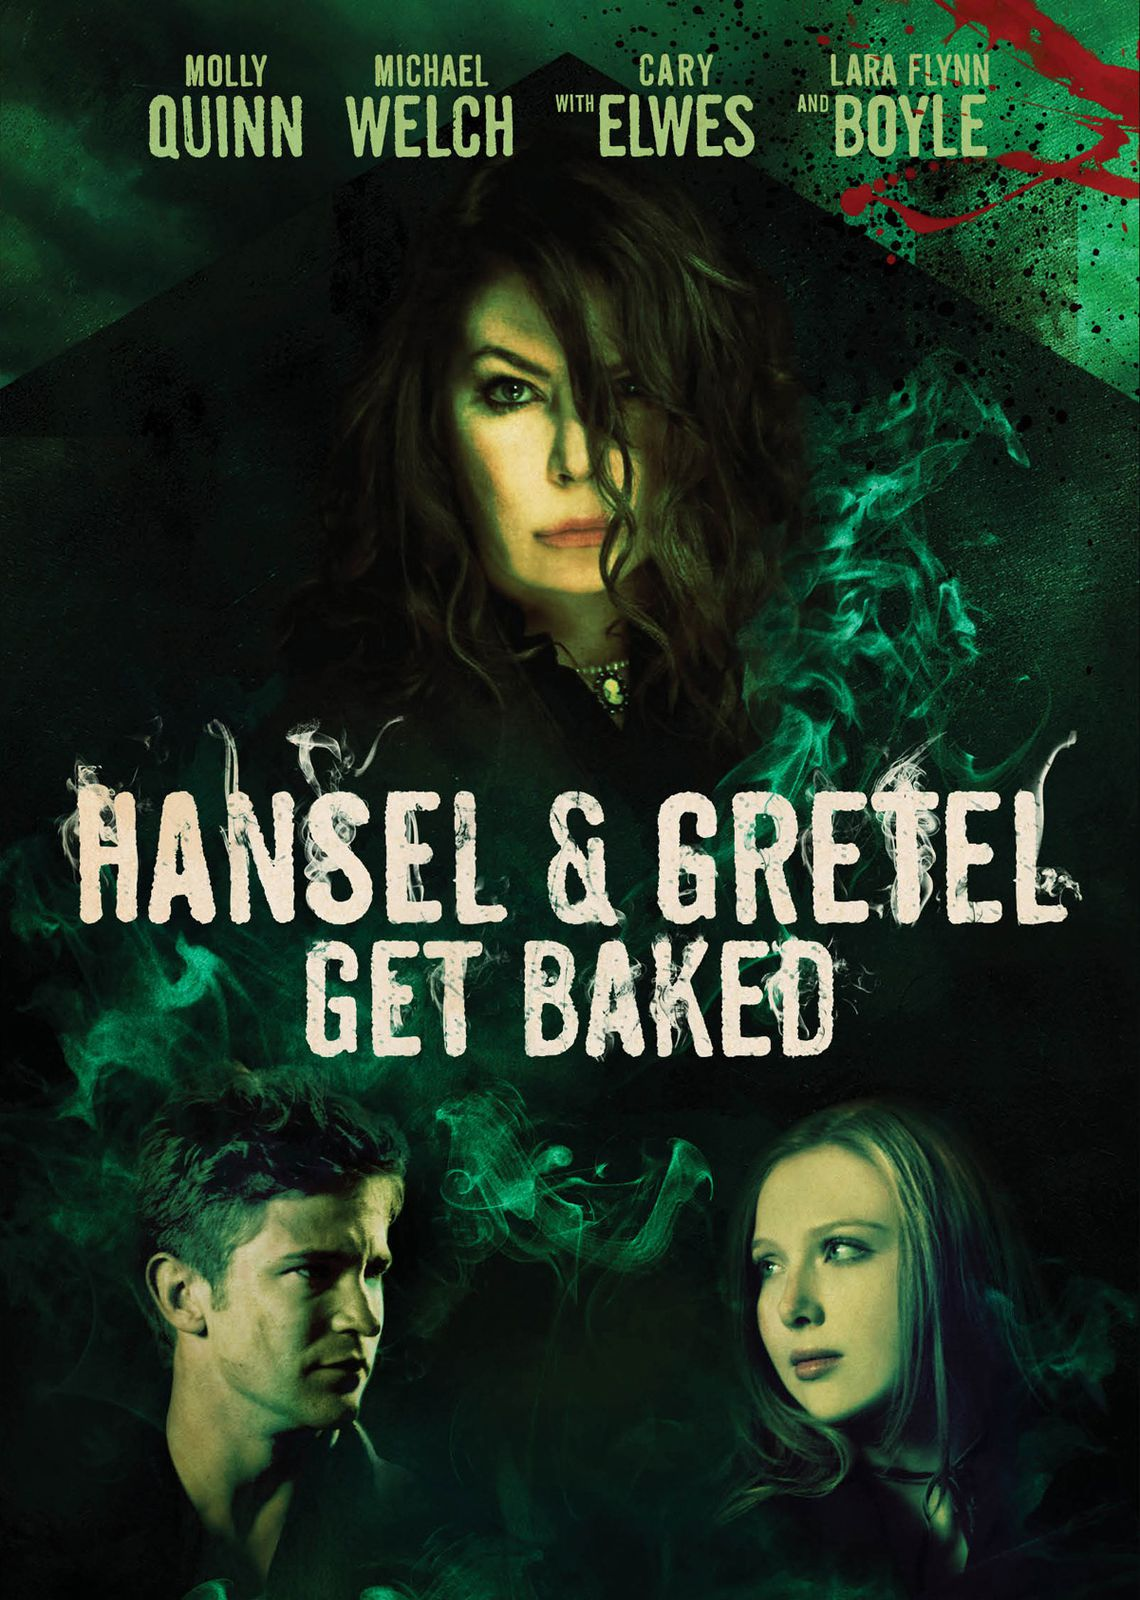 hansel & gretel get baked movie review - clairesaddictions.over-blog